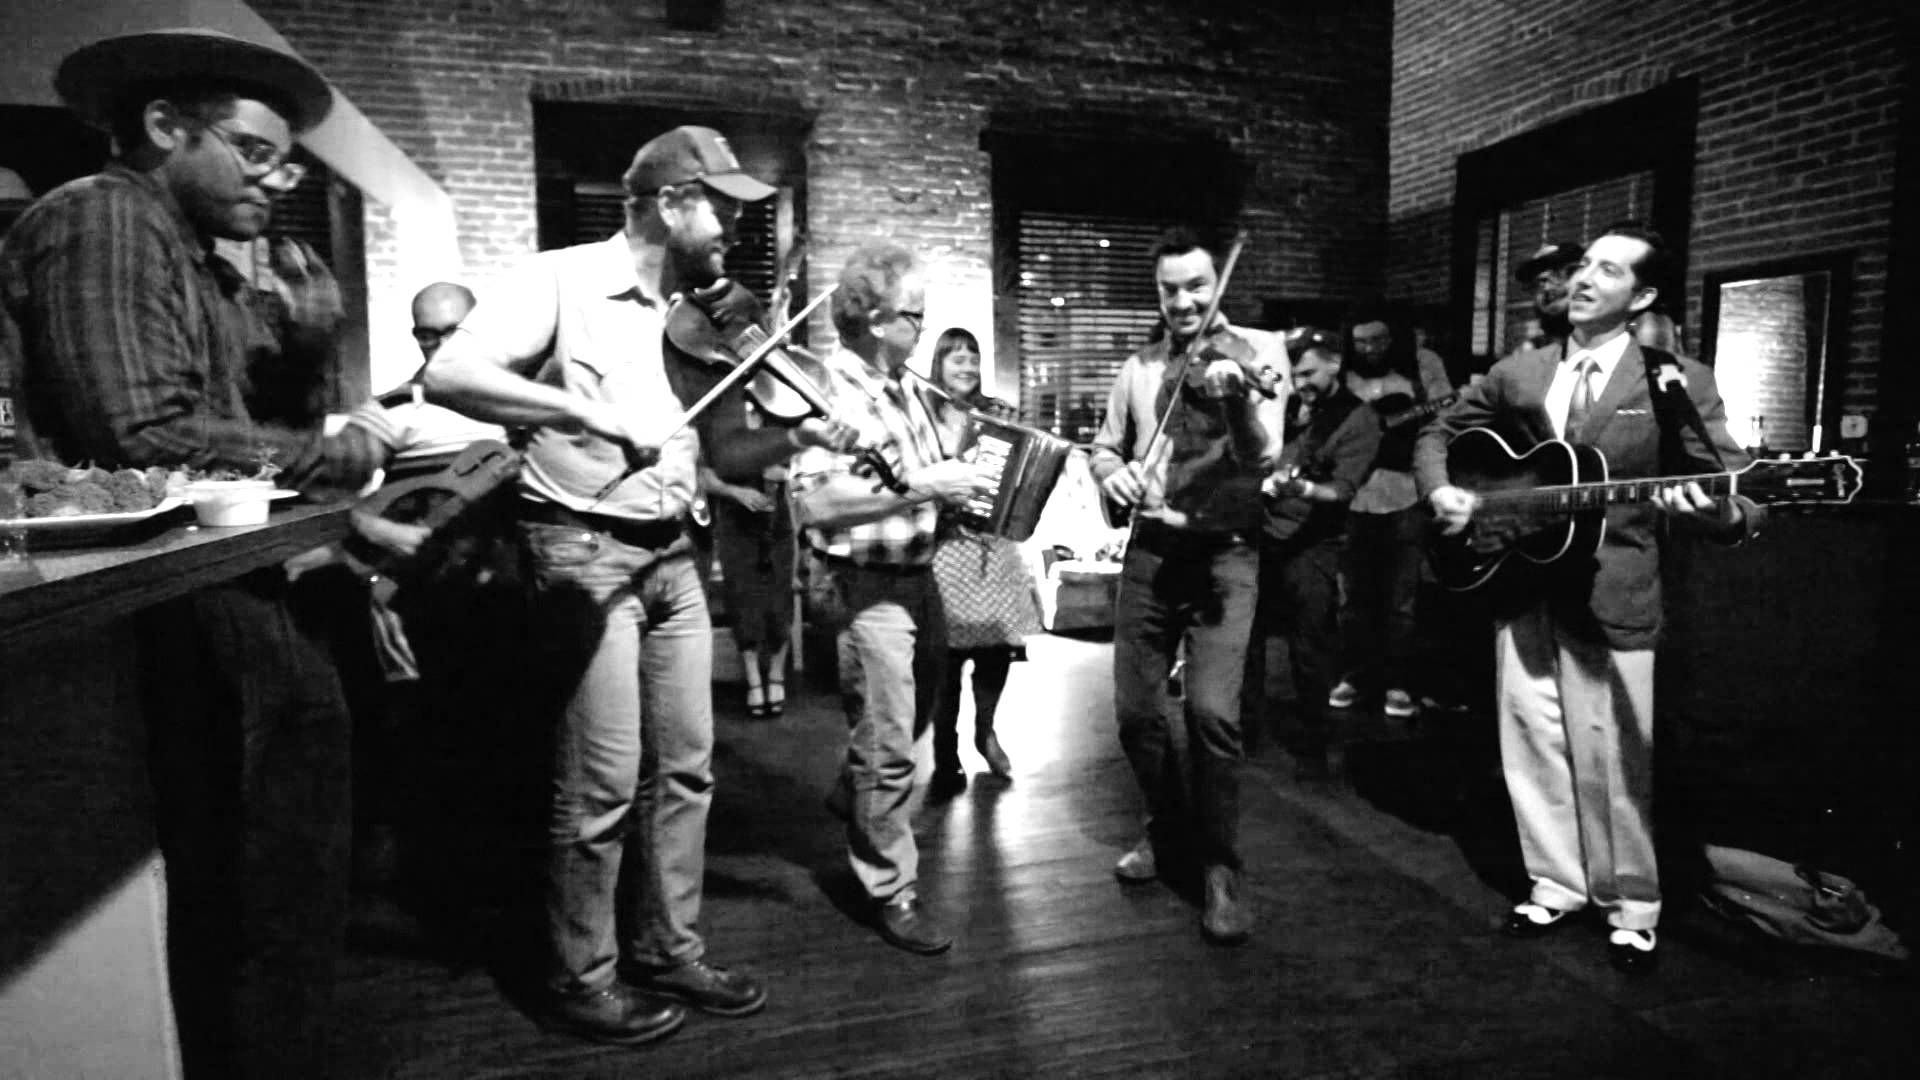 Mama Don T Allow Live Backstage Pokey Lafarge S Central Time Tour American Folk Songs Folk Song Concert